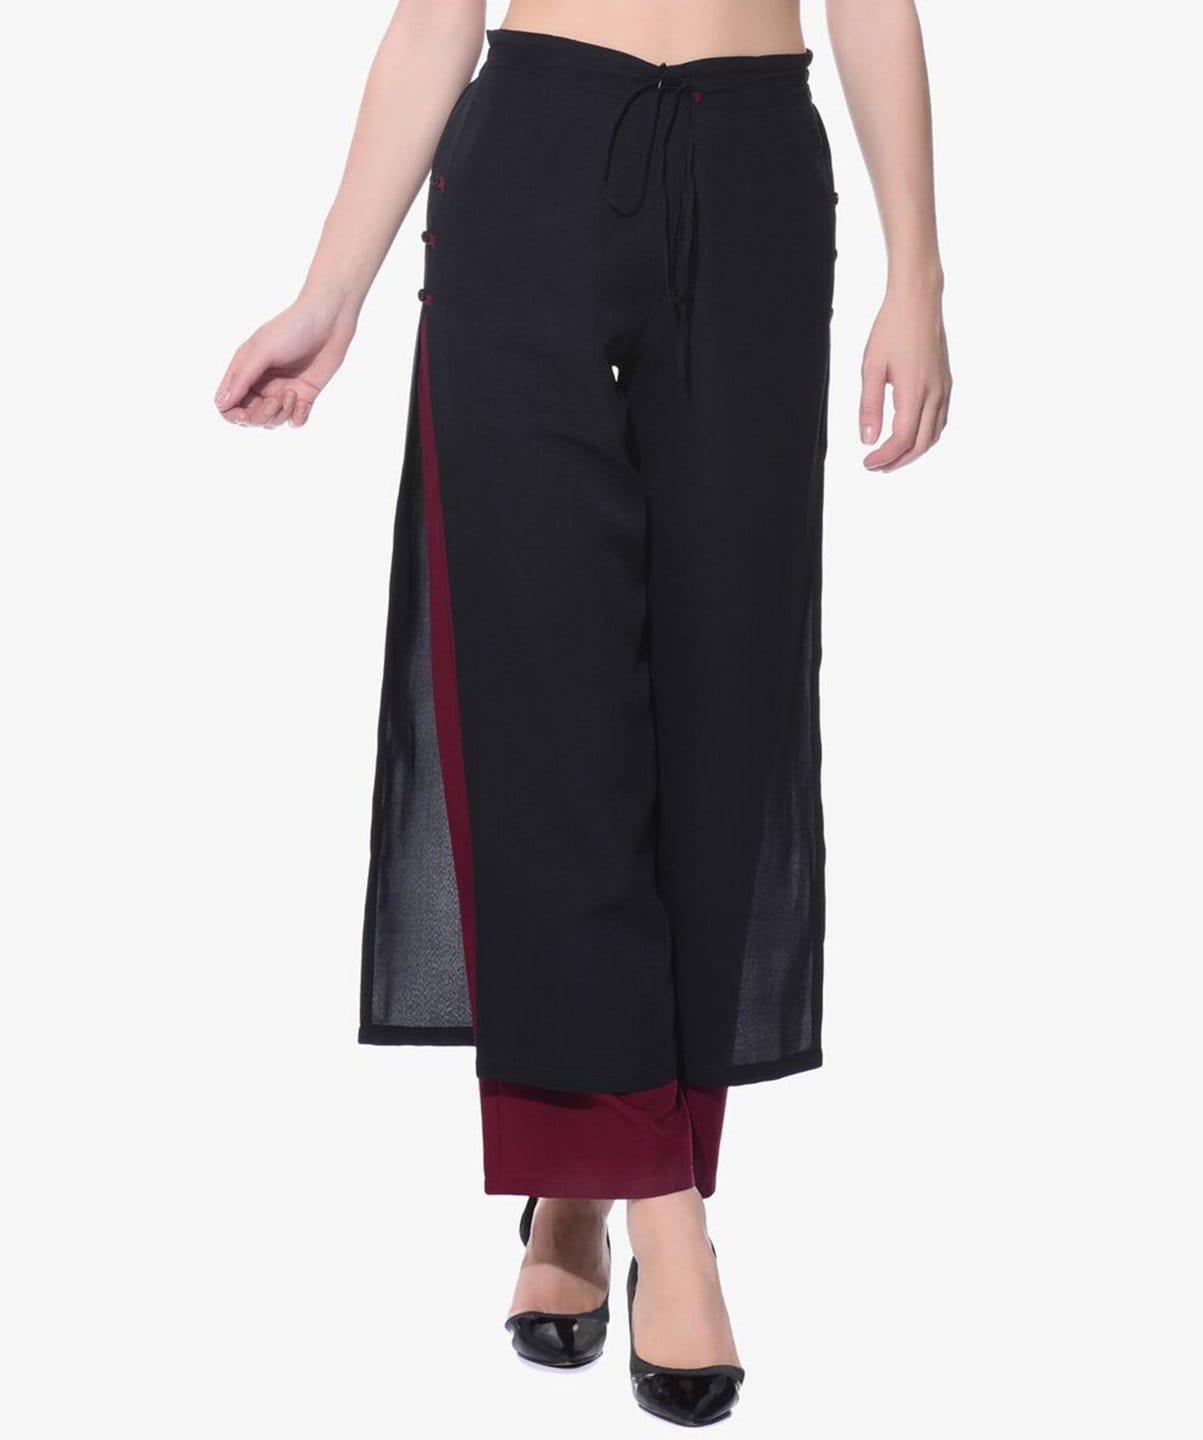 Uptownie Colorblocked Black & Maroon Layered Palazzos 1 trendsale